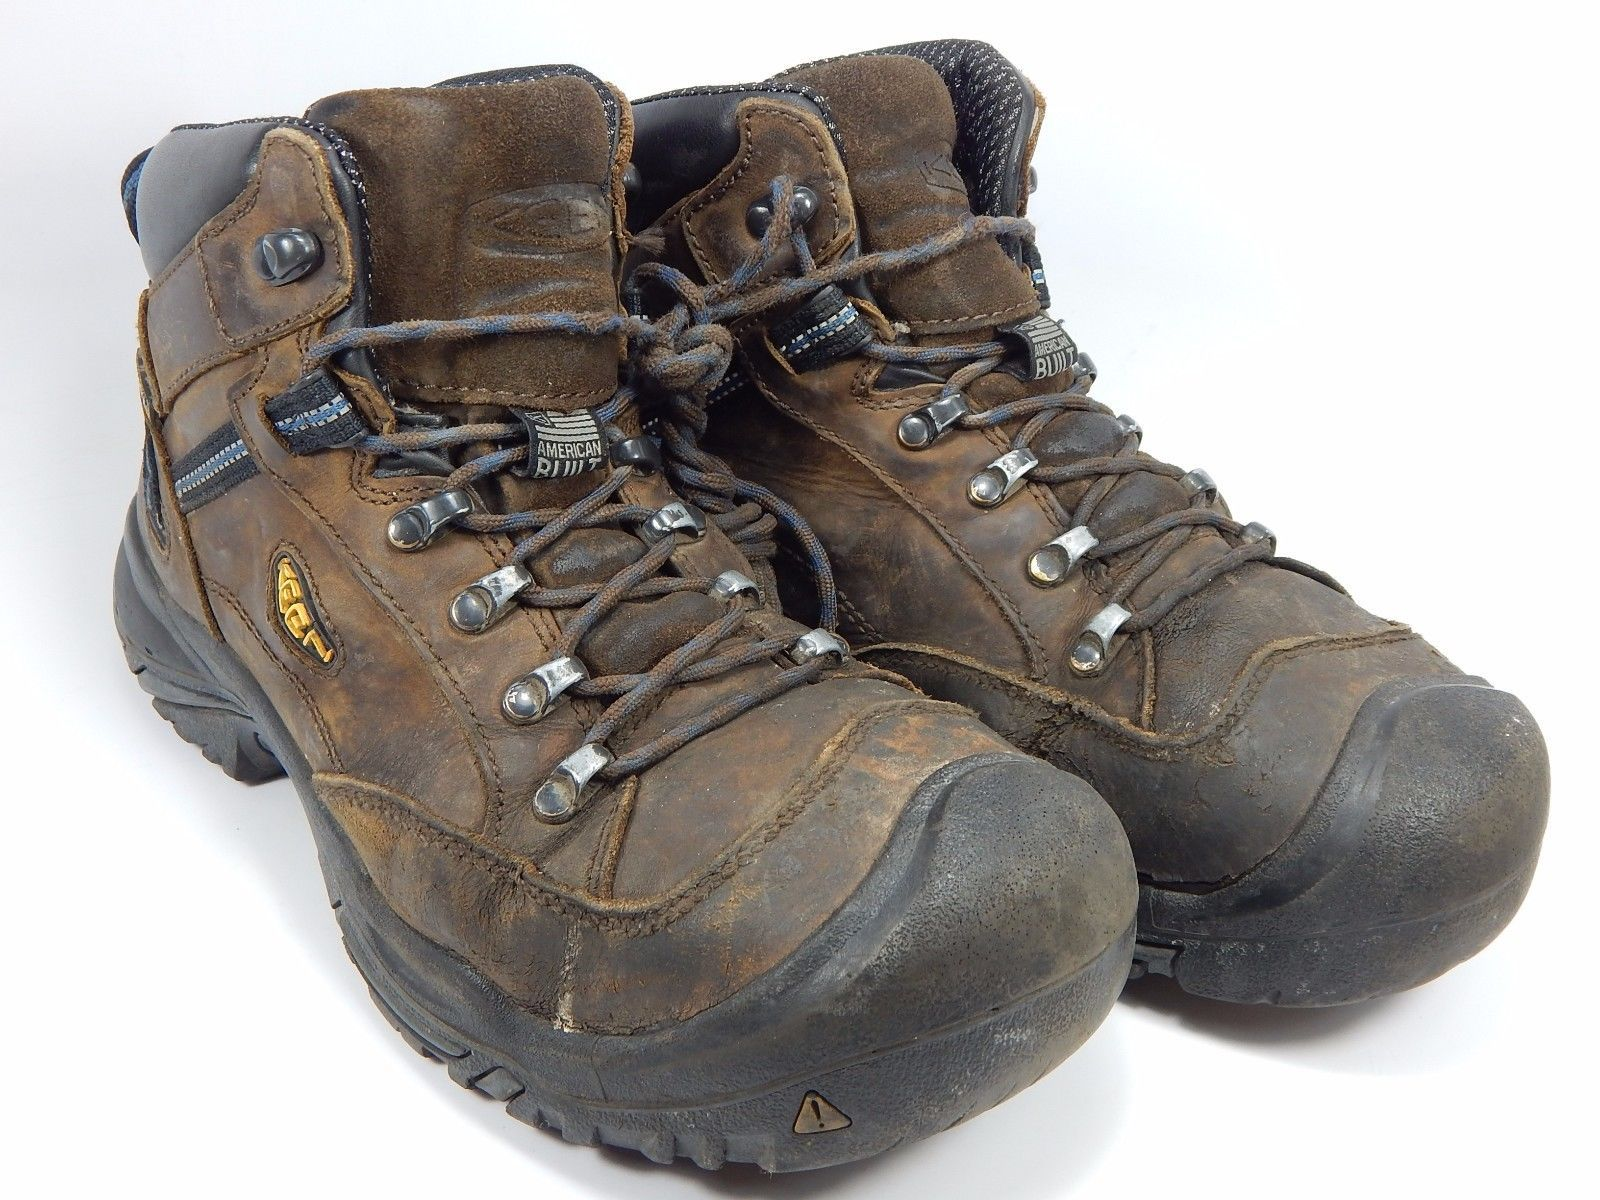 Keen Braddock Waterproof Utility Men's Steel Toe Work Boots Size 10 M (D) EU 43